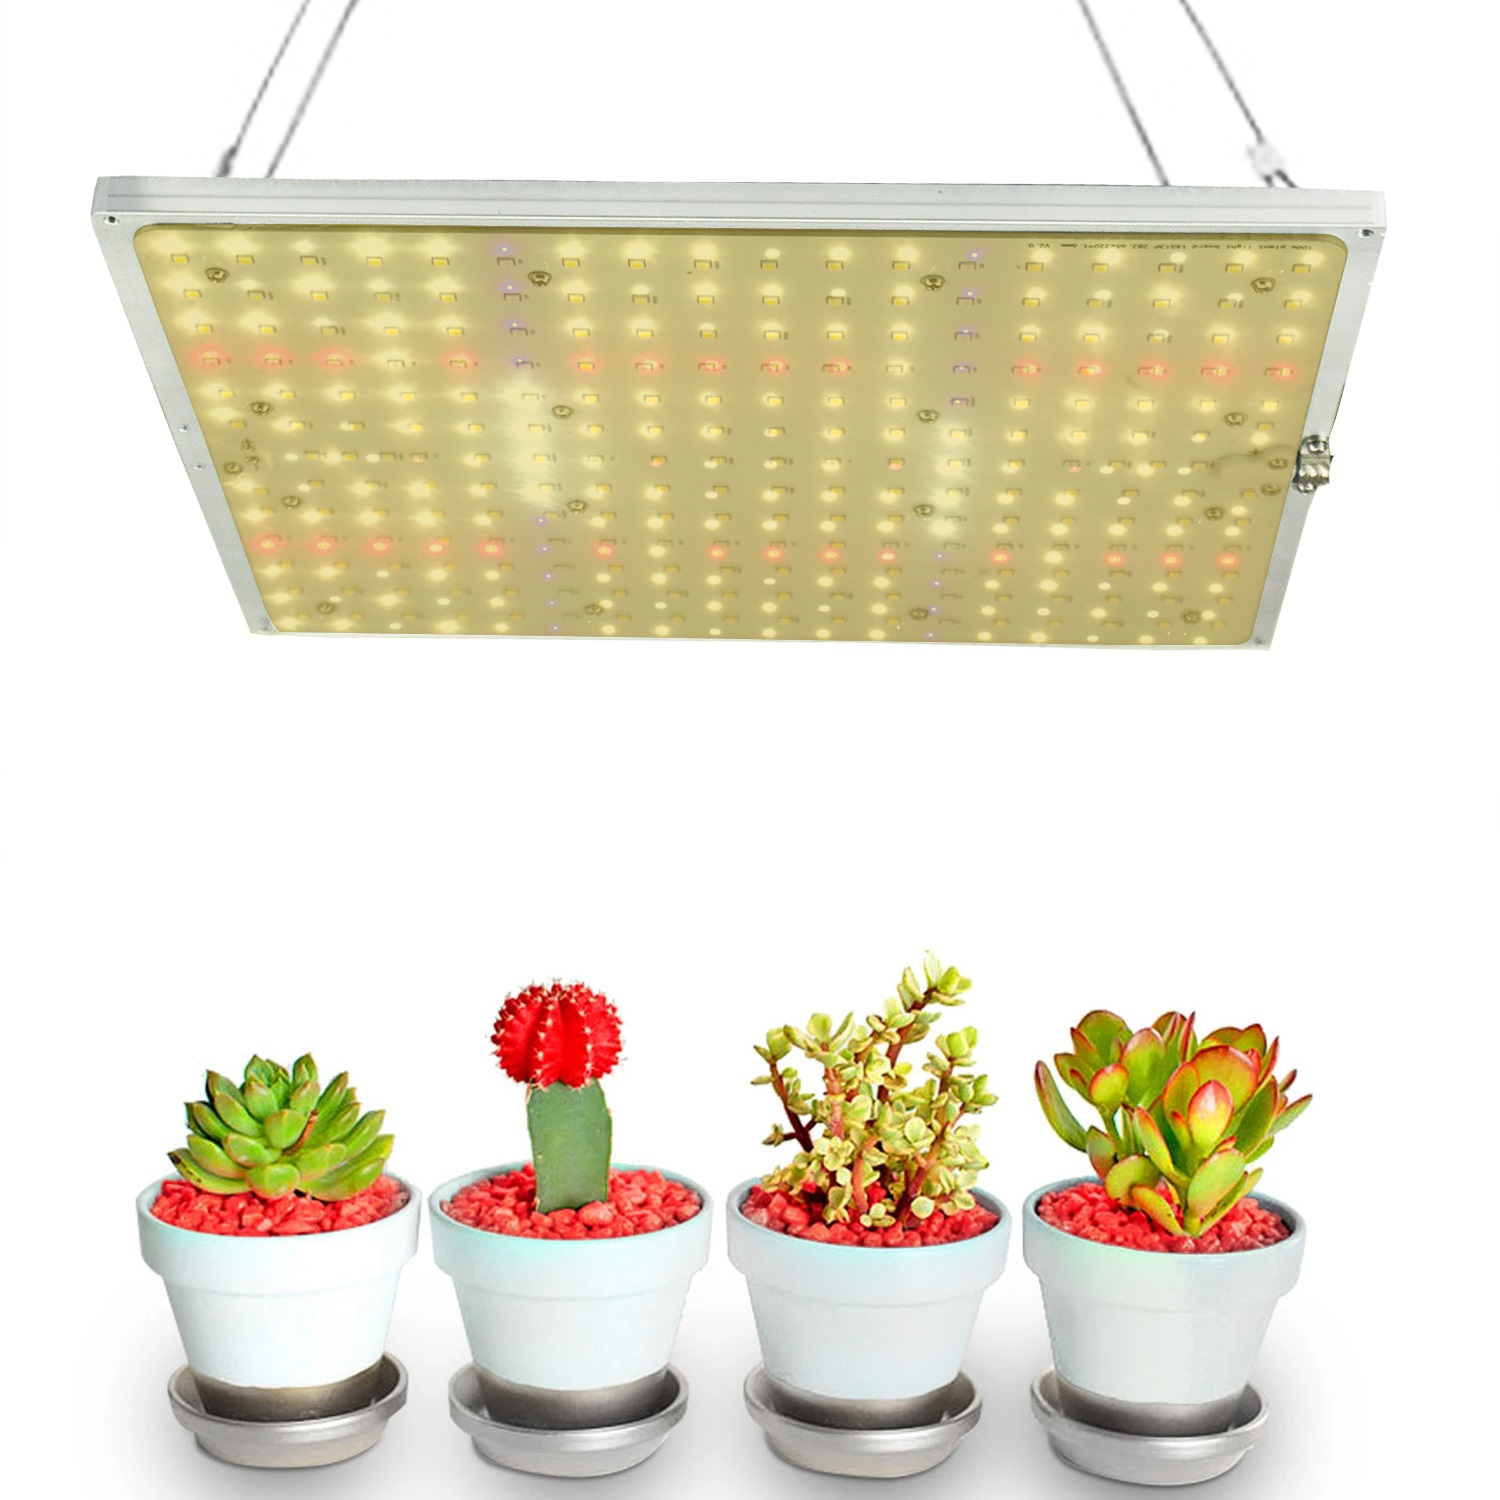 Waterproof Full Spectrum LED Grow Light for Indoor Plants Growing Seeding Blooming